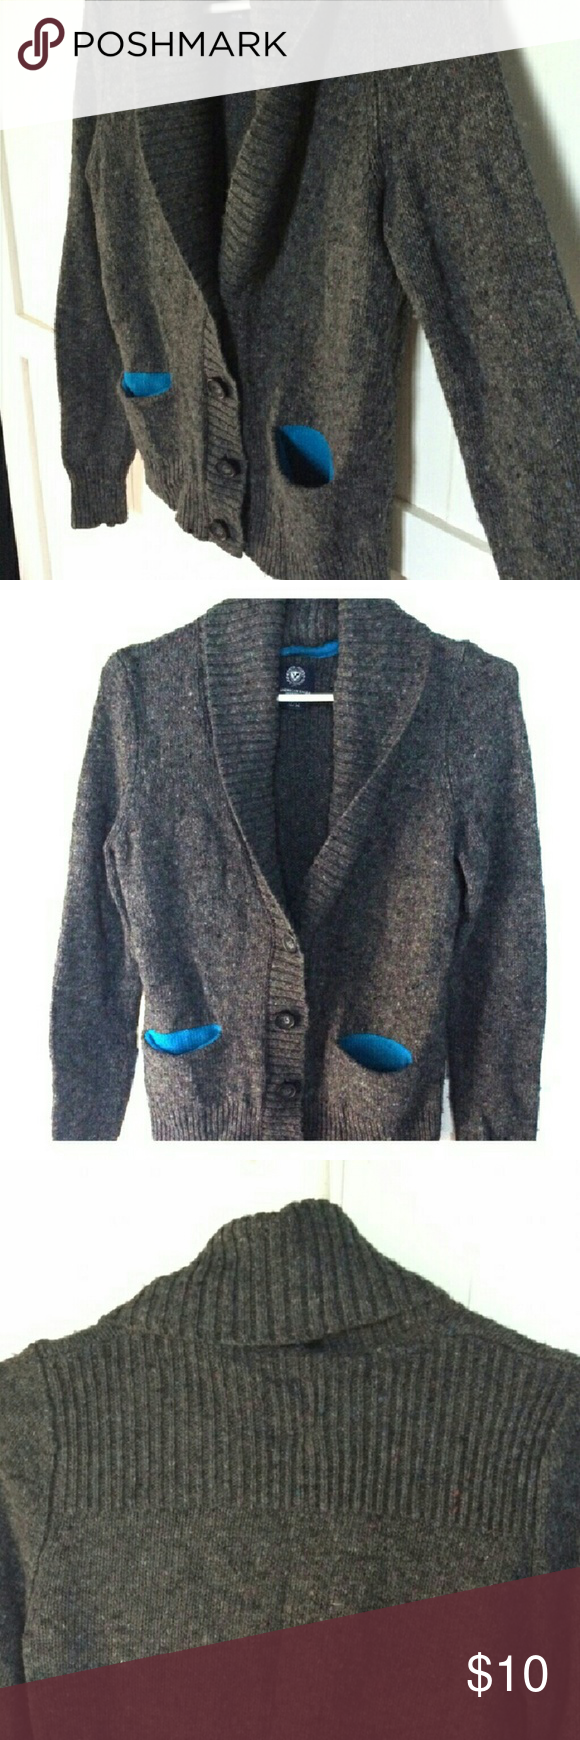 American Eagle cardigan Warm and cozy button up cardigan with blue detail in the pockets, EUC American Eagle Outfitters Sweaters